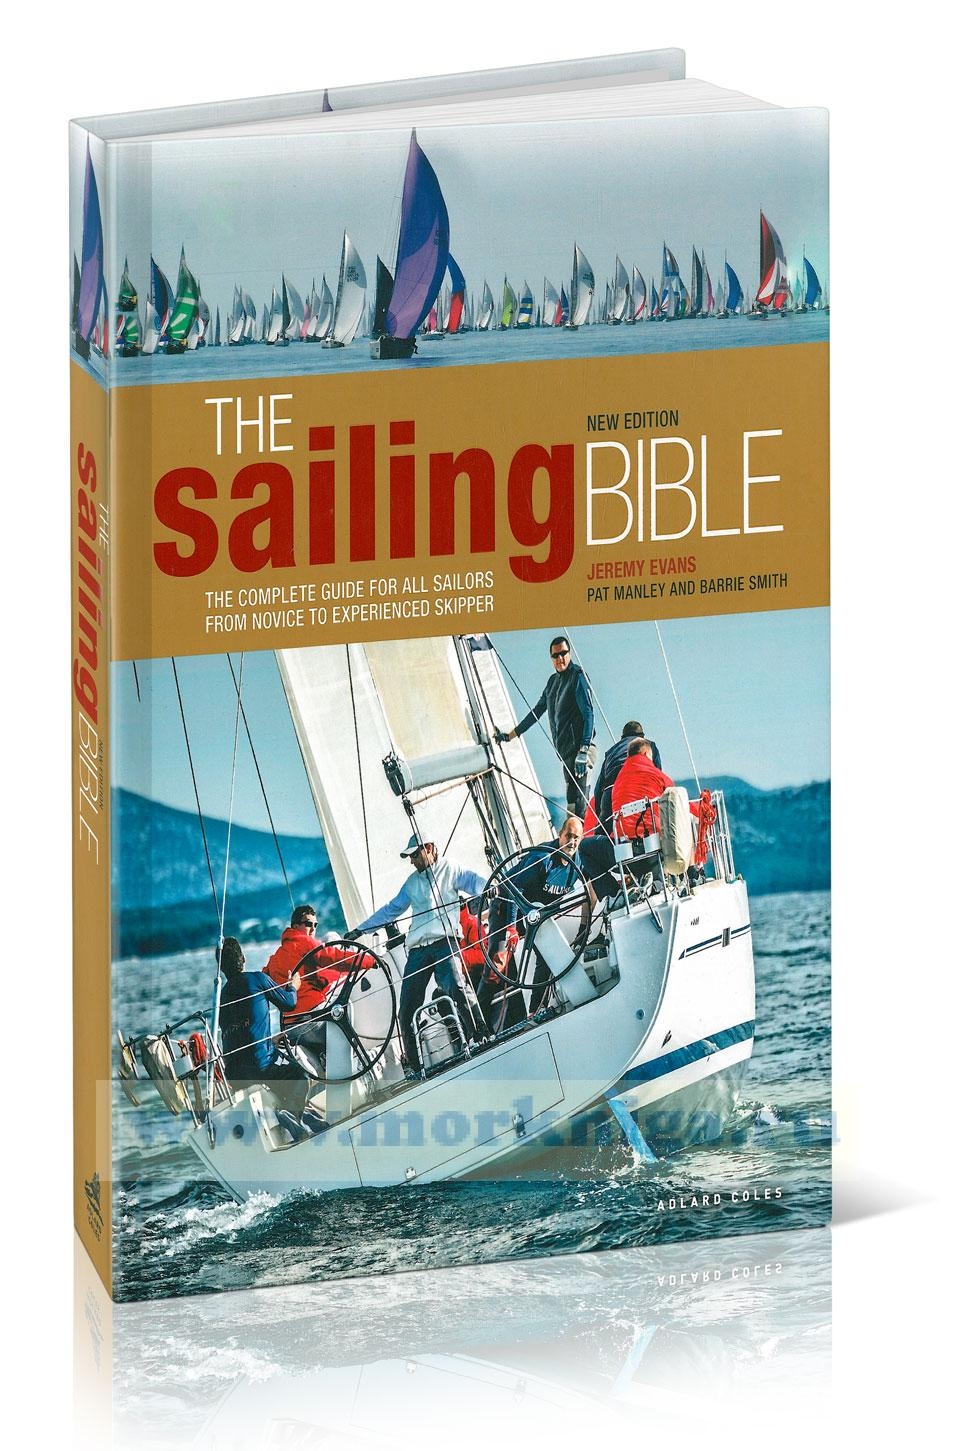 The sailing bible. The complete guide for all sailors from novice to experinced skipper